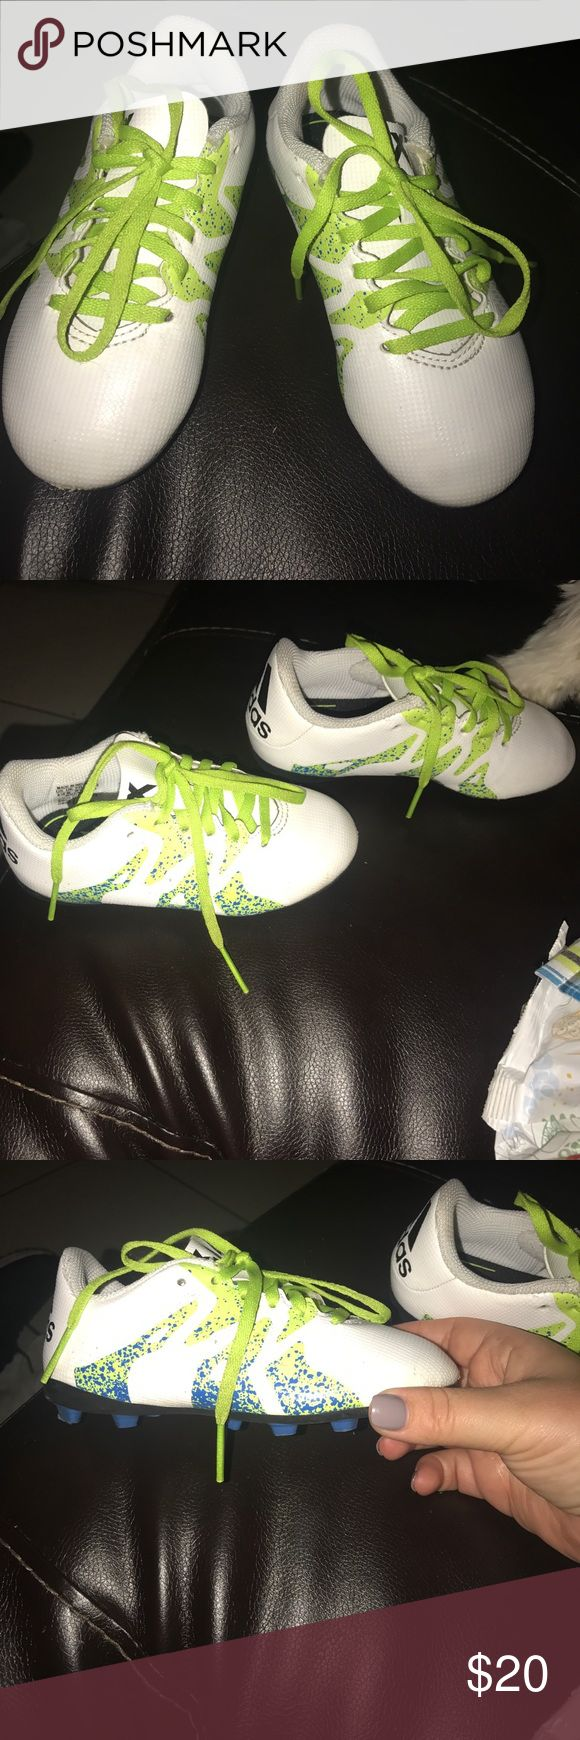 Adidas soccer cleats toddler size Like new. Barely used. Adidas soccer cleats for boys. adidas Shoes Sneakers